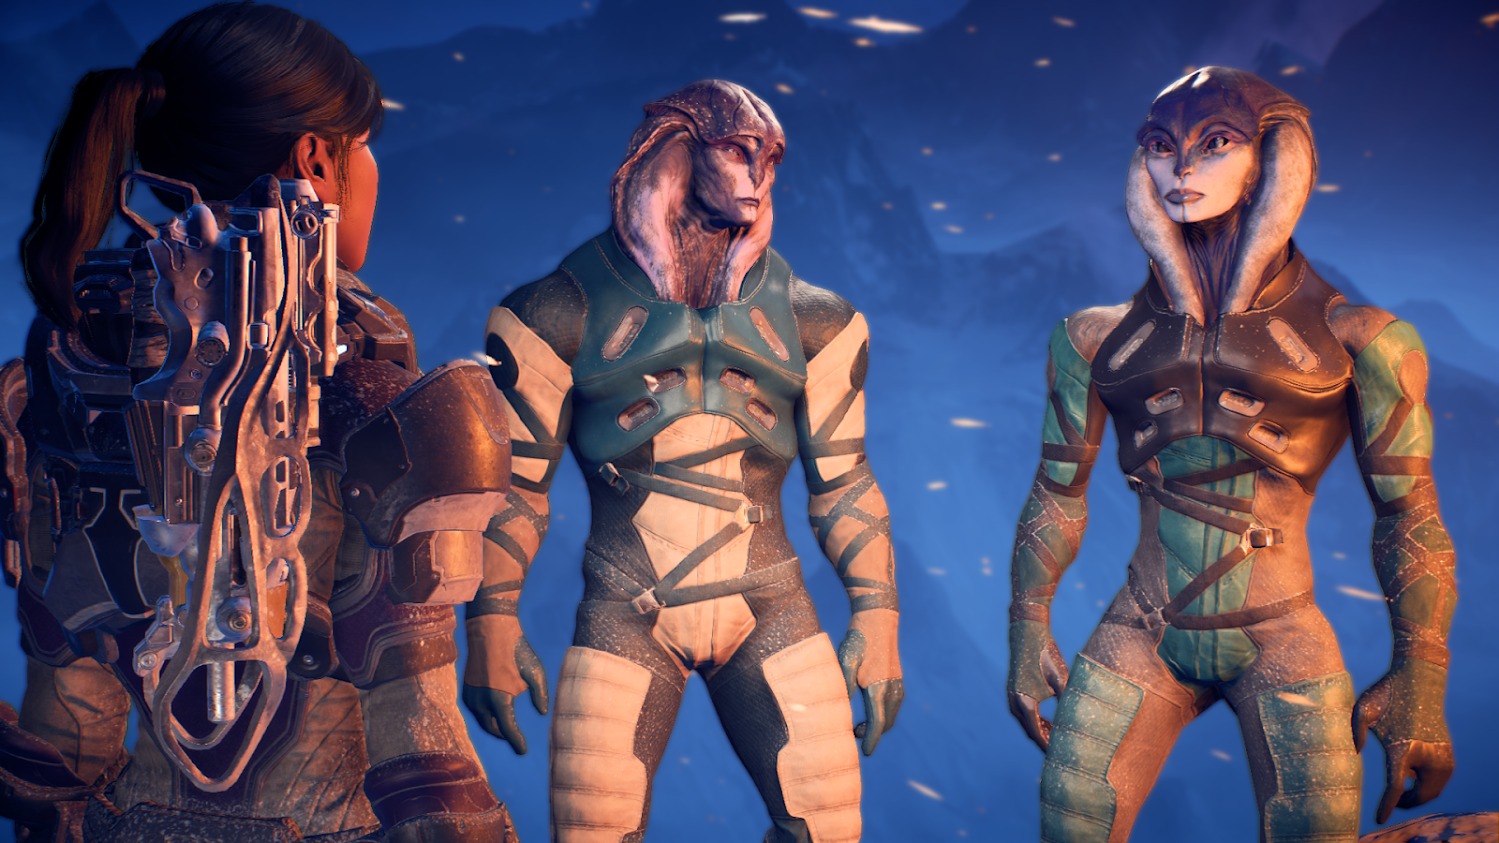 A picture of two angara from Mass Effect: Andromeda